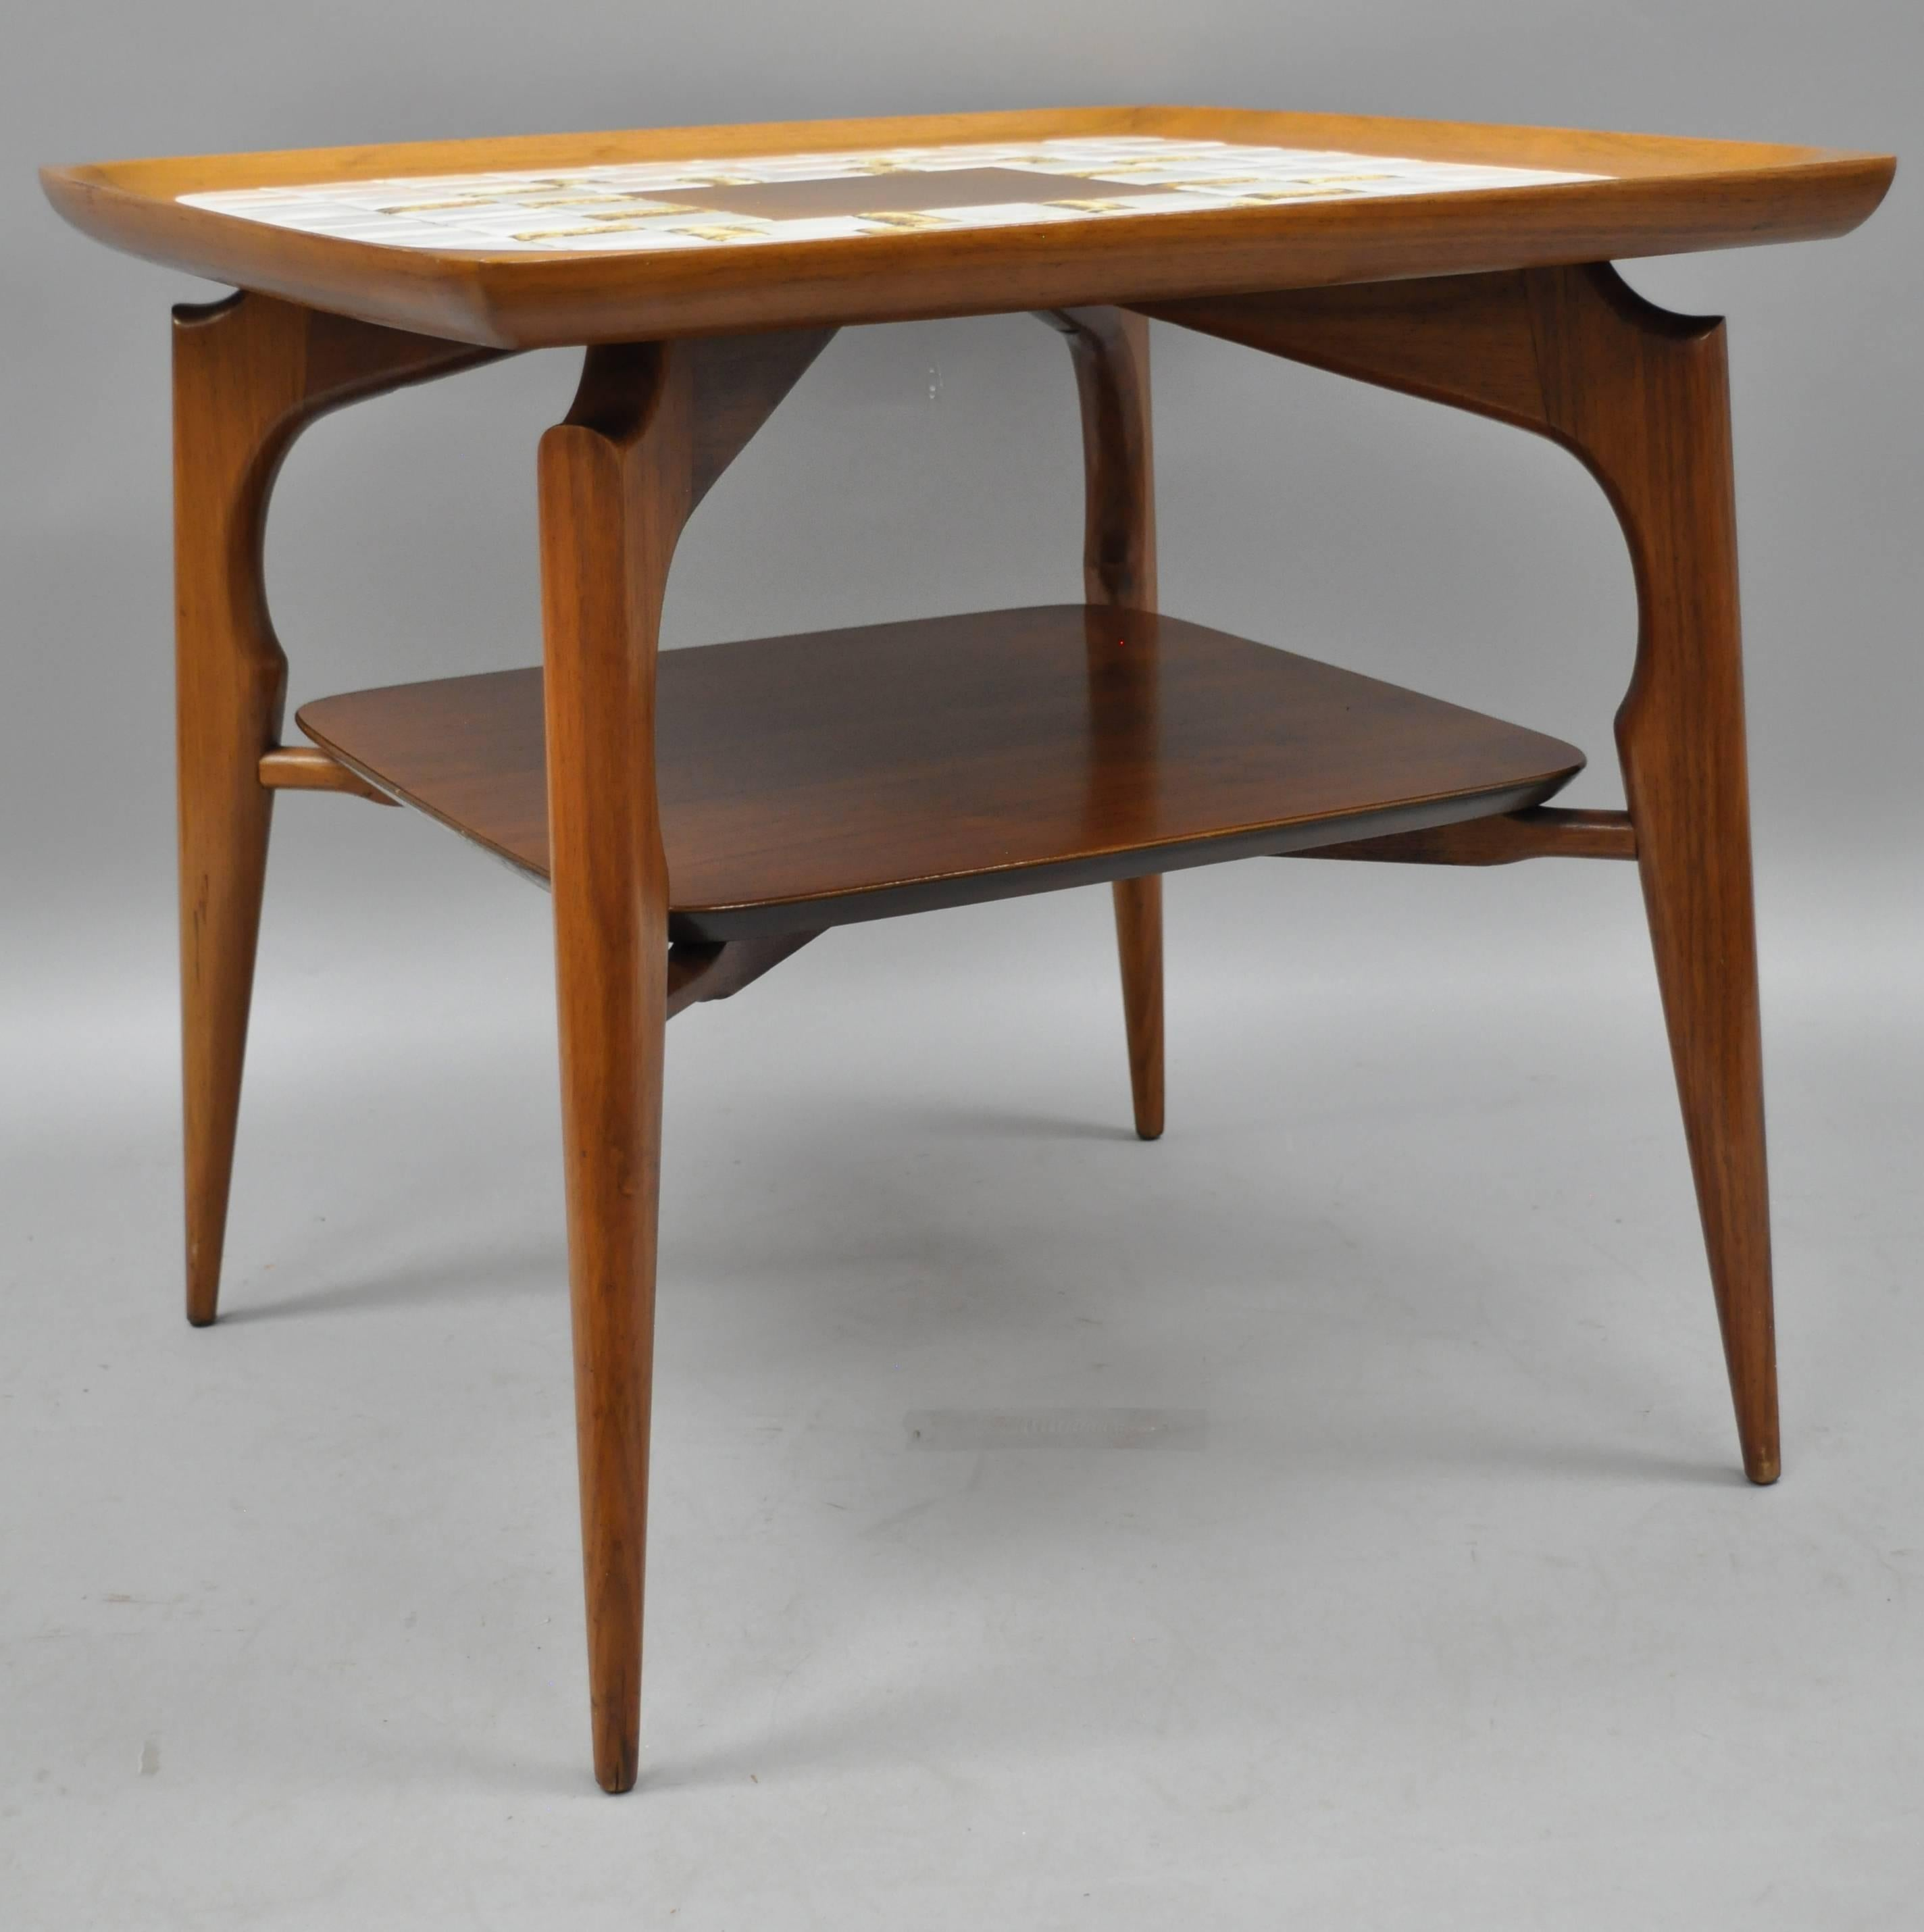 Pair Of Danish Modern Walnut And Tile Top End Tables. Item Features Mosaic  Porcelain Tile